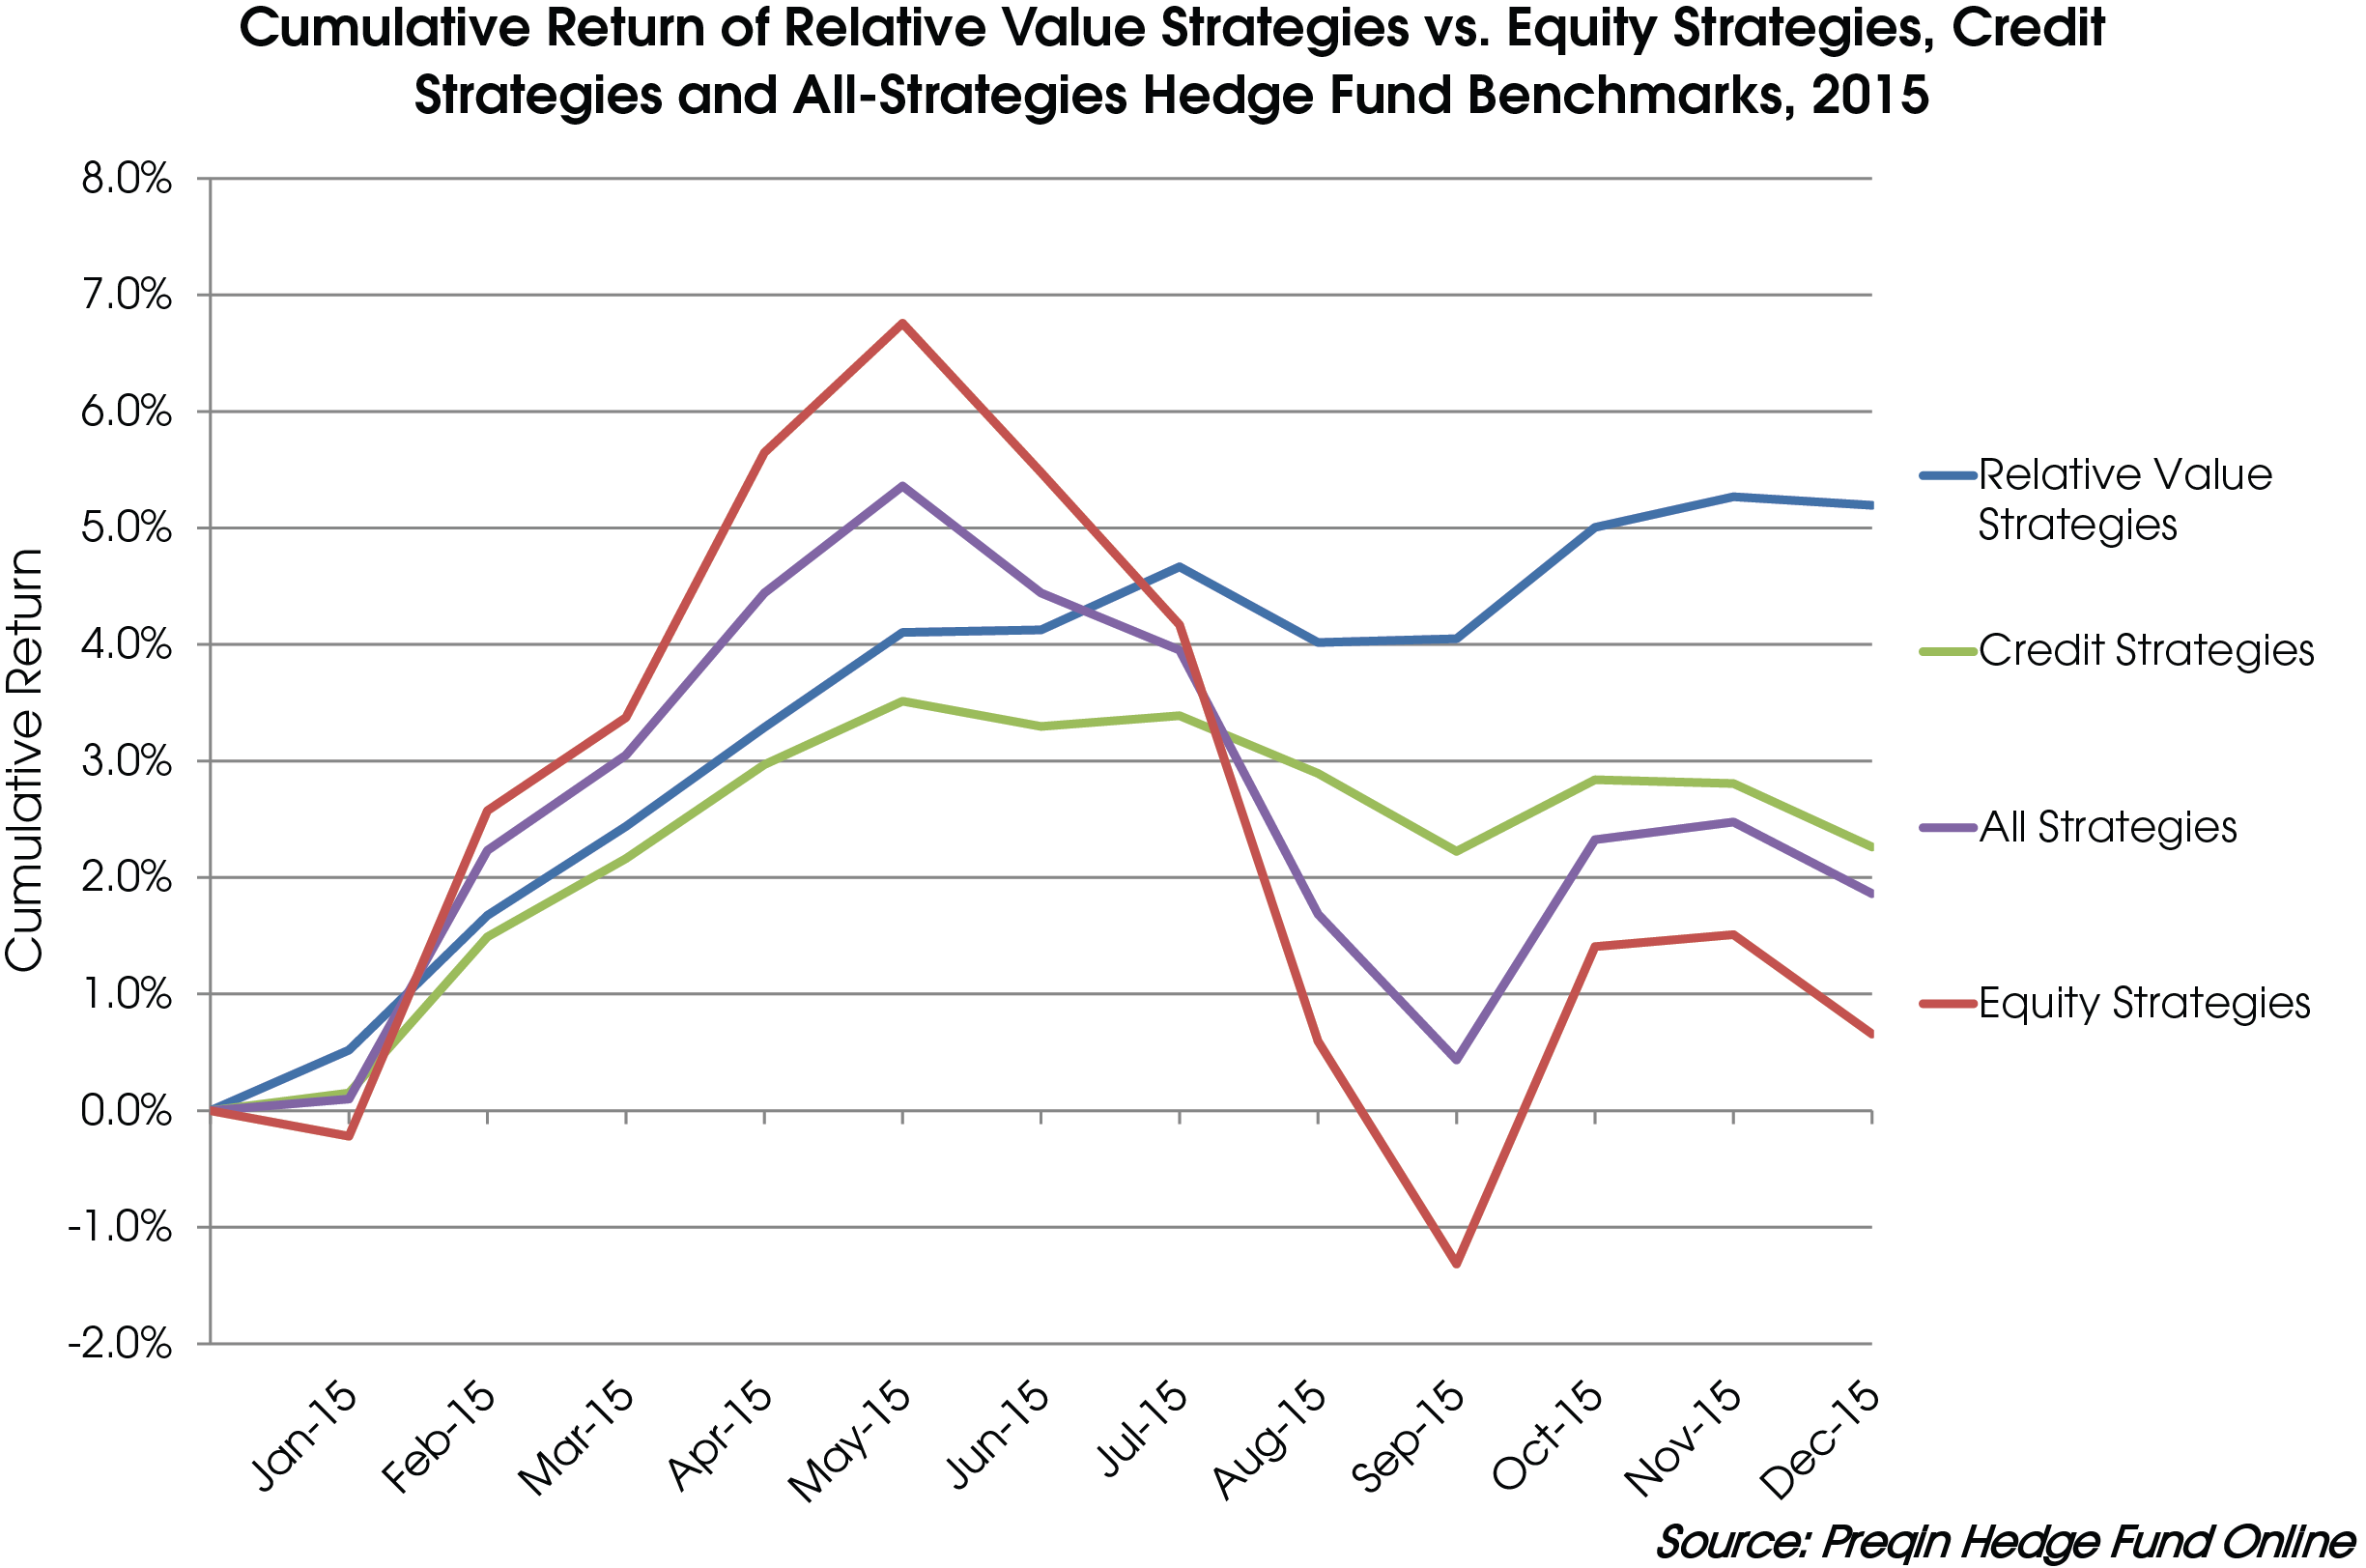 Relative Value Strategies Hedge Funds Top Performers in 2015